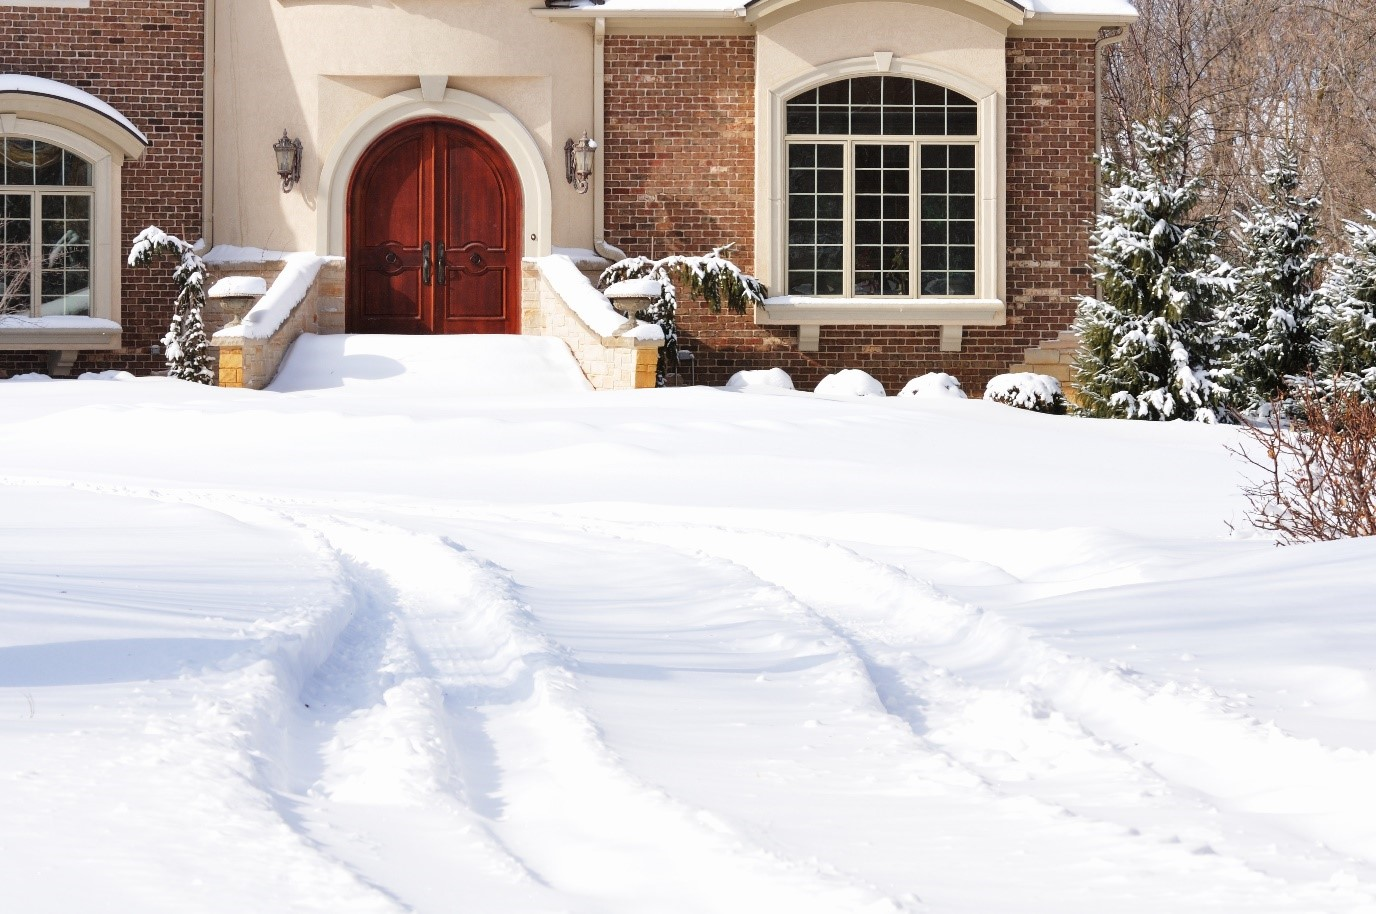 How to Remove Snow from Your Driveway